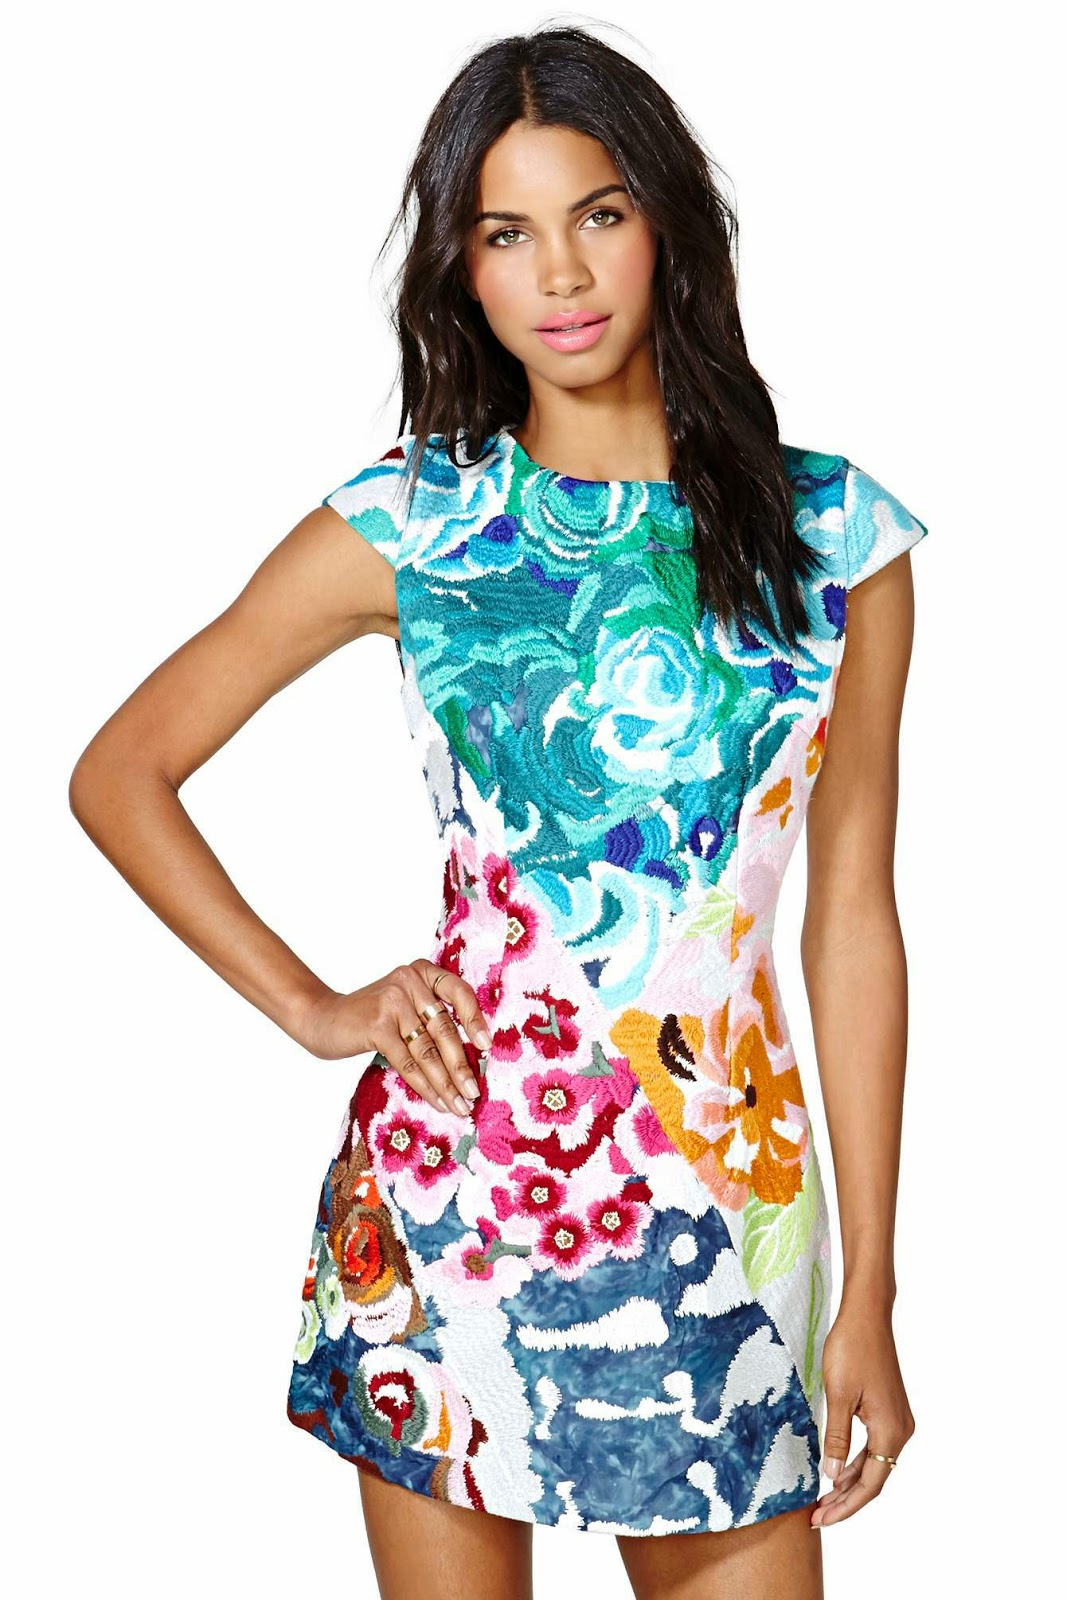 Pinterest find -  Beautiful bright colored floral embroidered dress